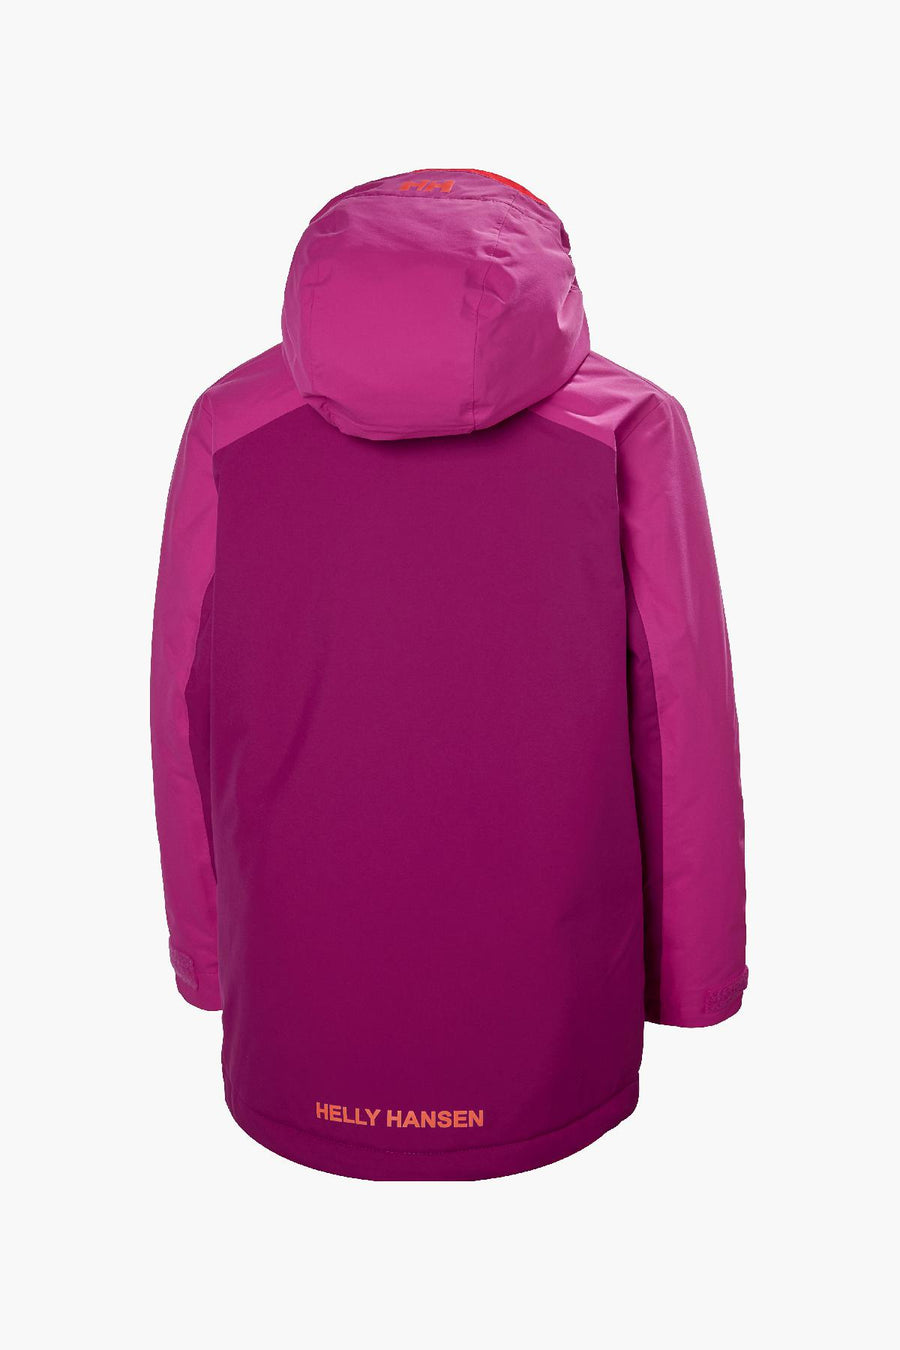 Helly Hansen Jr Hillside Jacket - Dragon Fruit